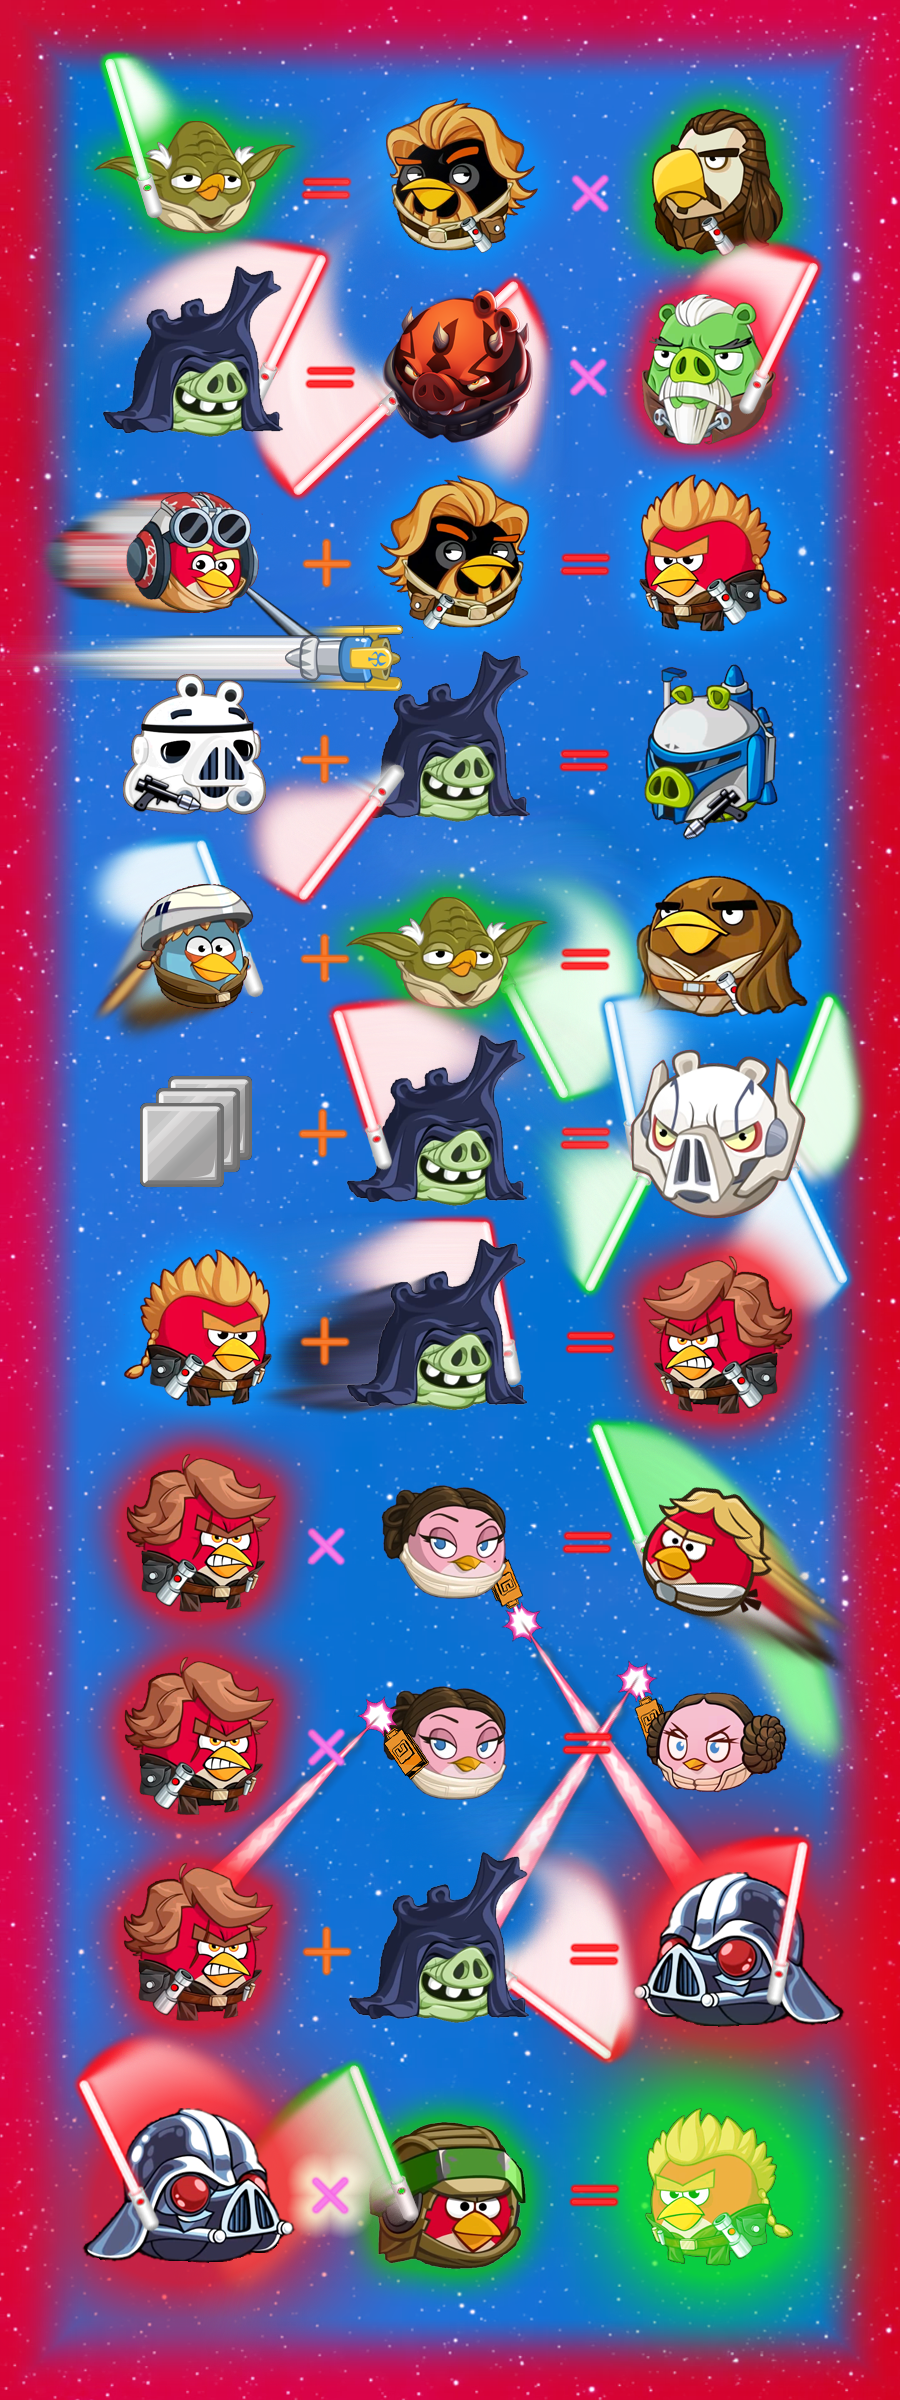 Angry Birds Star Wars I And Ii All Timeline And Their Stories Star Wars Films Series Episode 1 To 6 Angry Birds Star Wars Rainbow Fish Star Wars Film